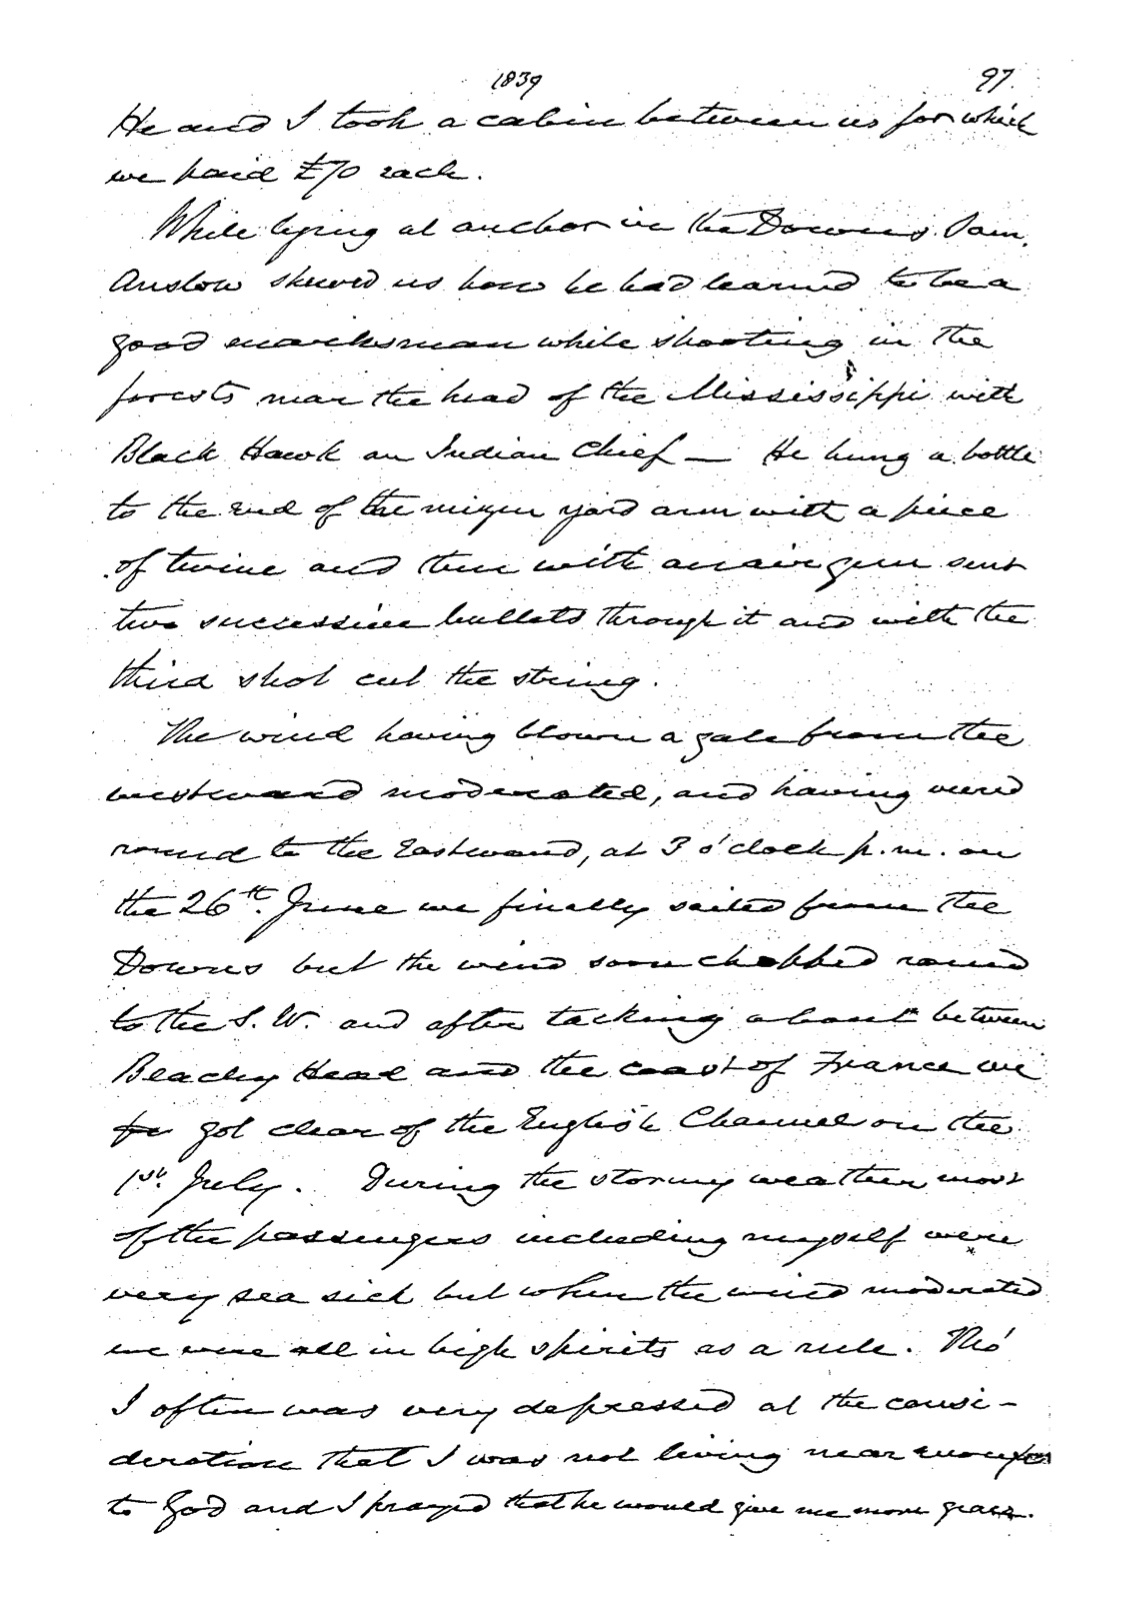 Chauncy PAC-10024086 memoirs page 119 of 220 pages